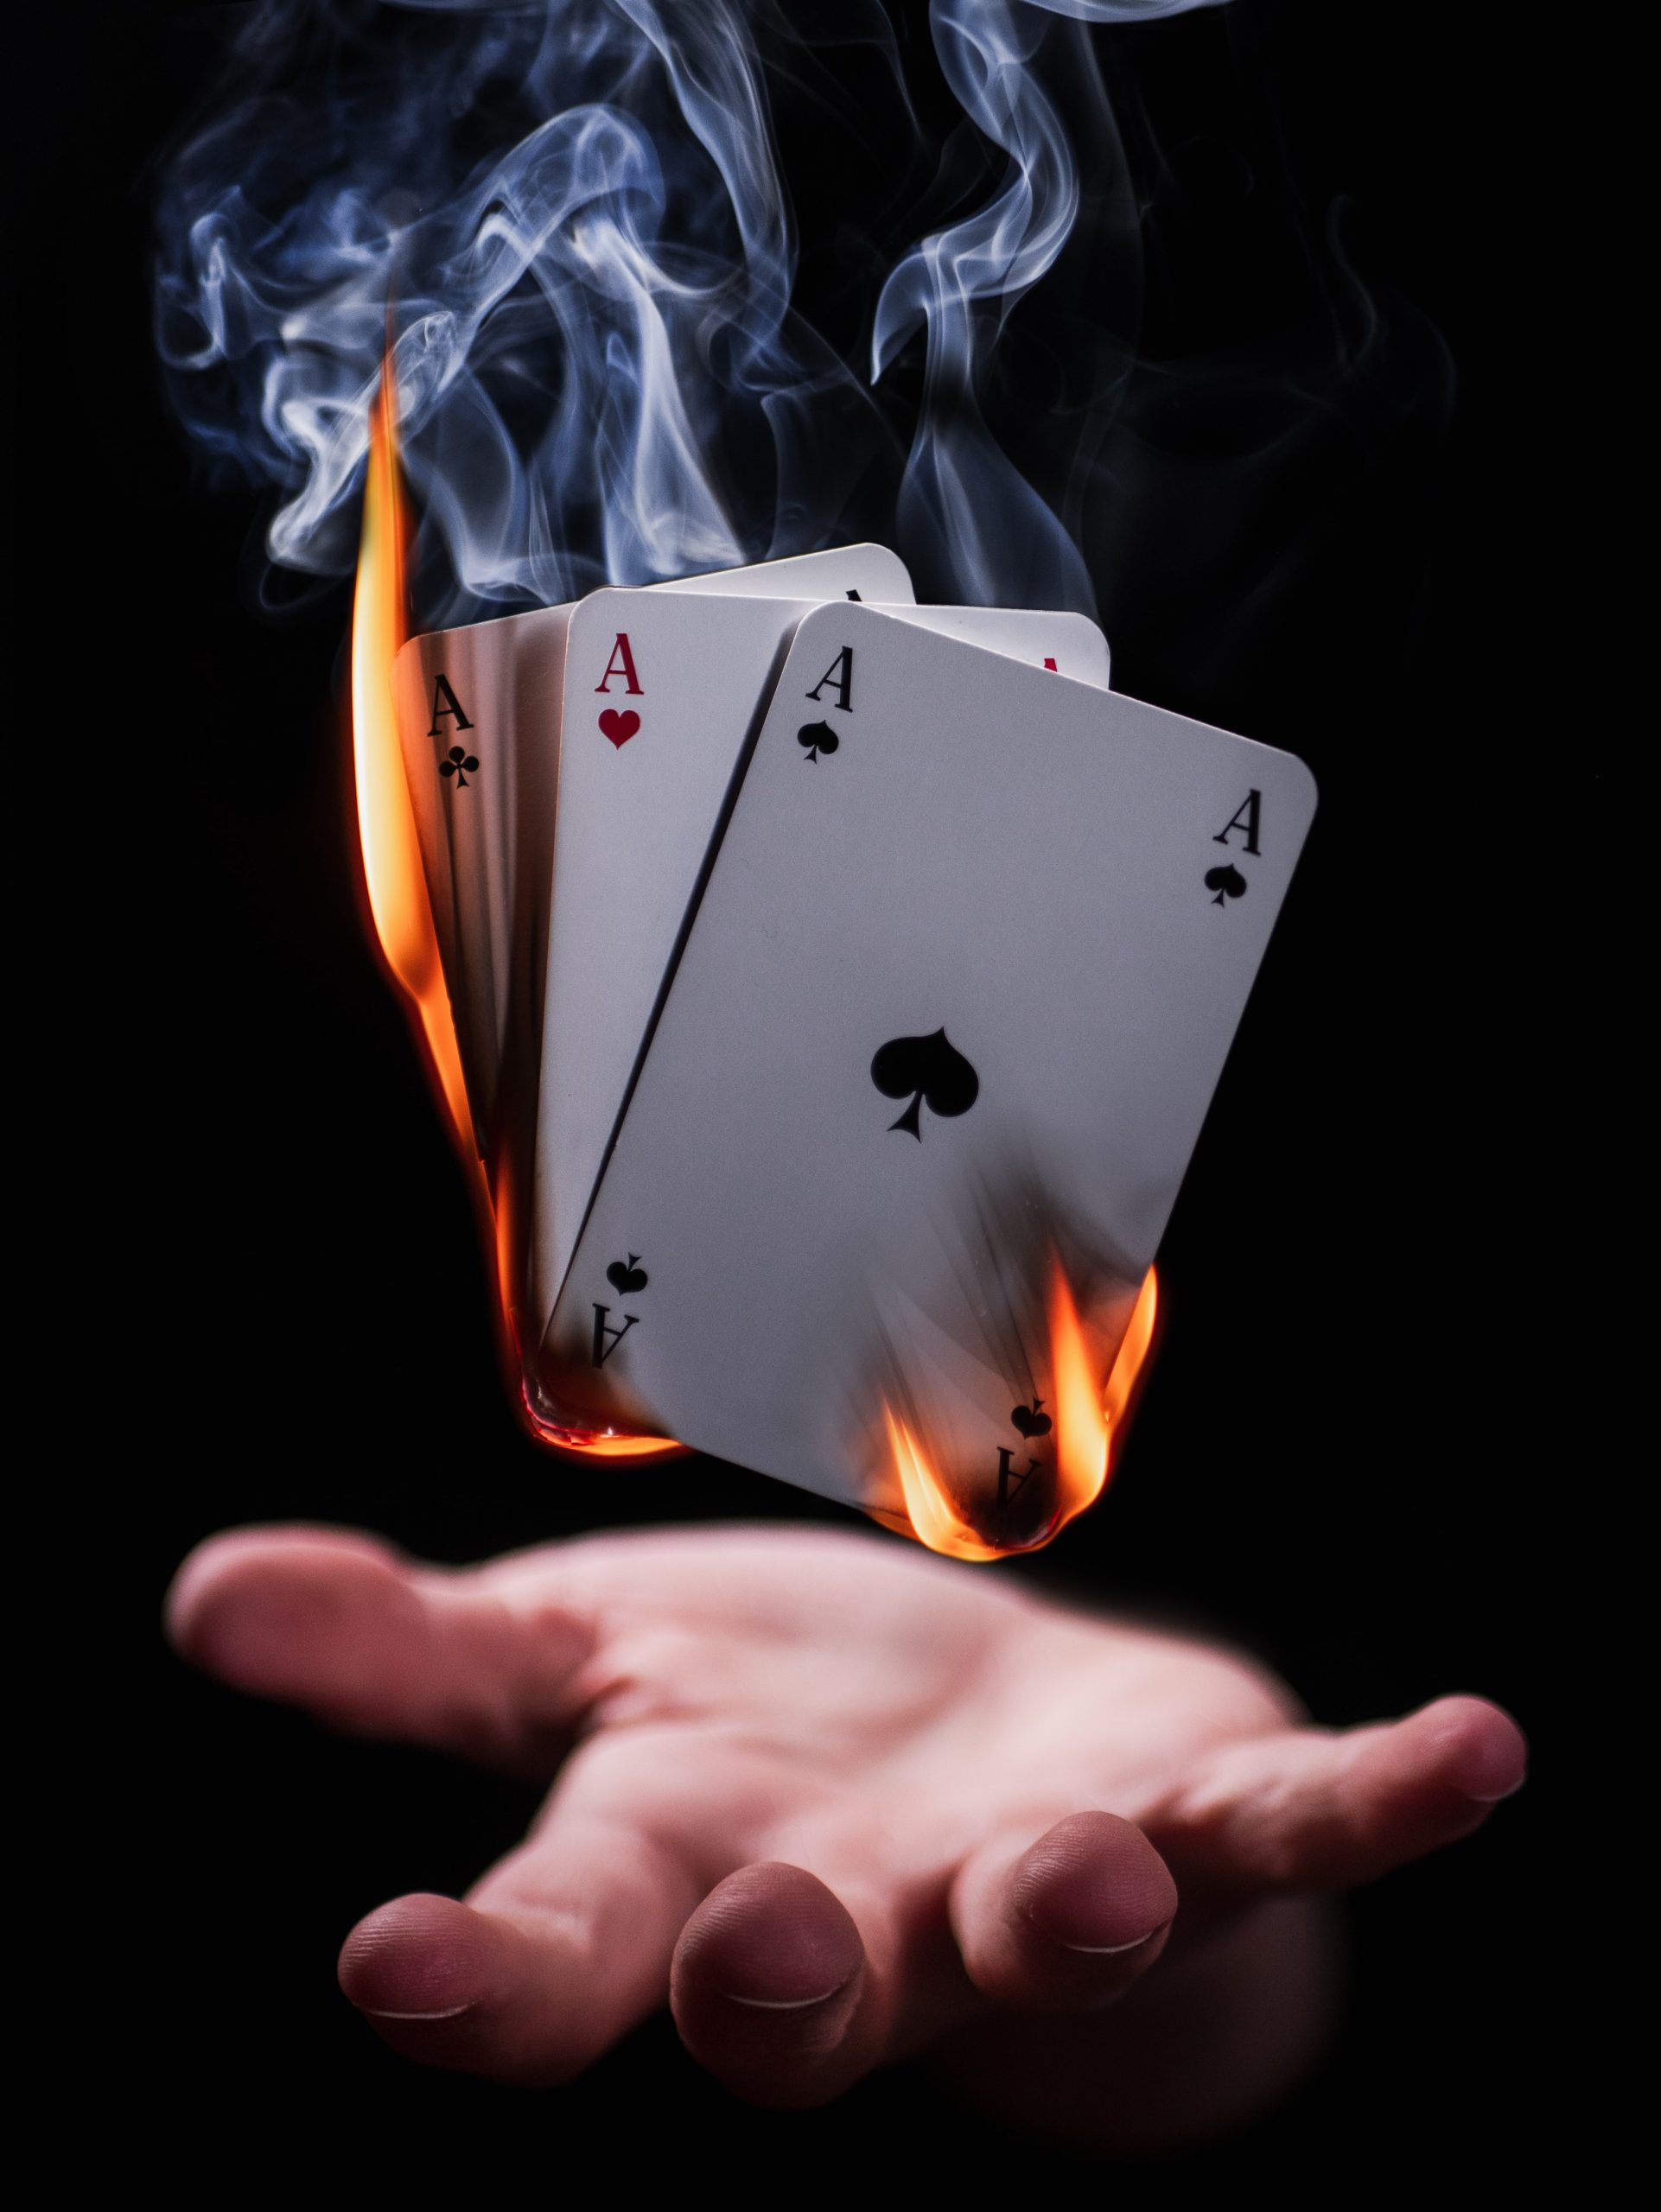 card deck on fire